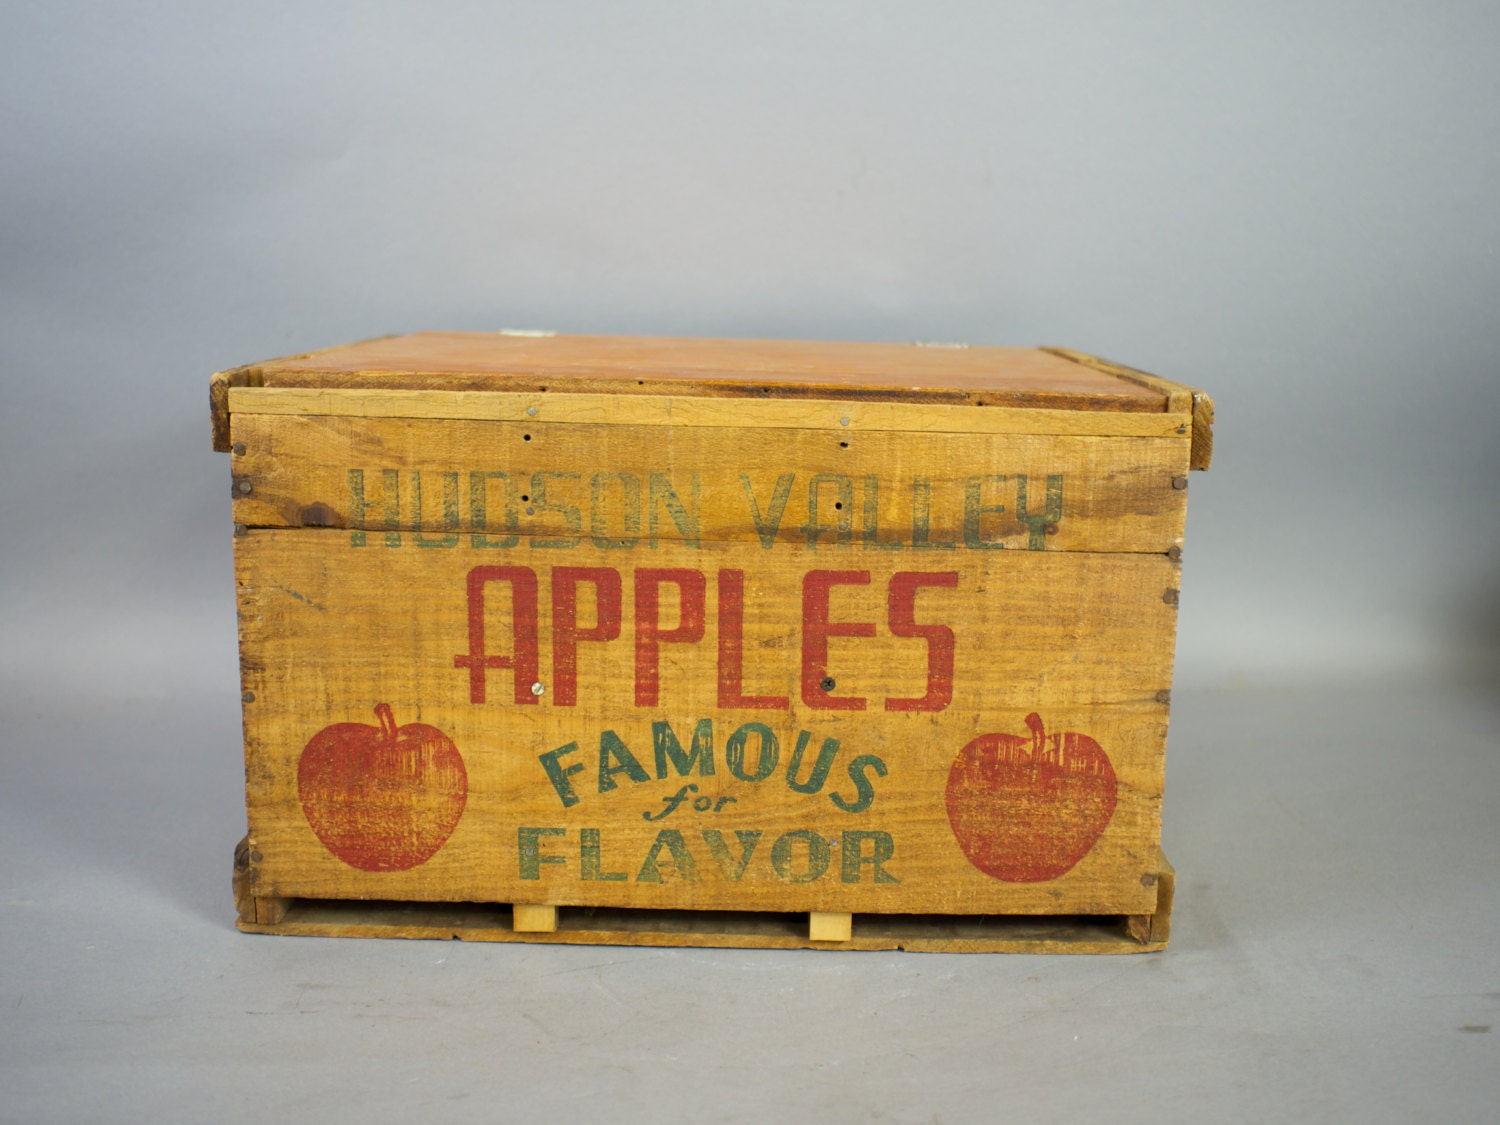 Vintage apple crate wood apple crate by sevenbc on etsy for Vintage apple boxes